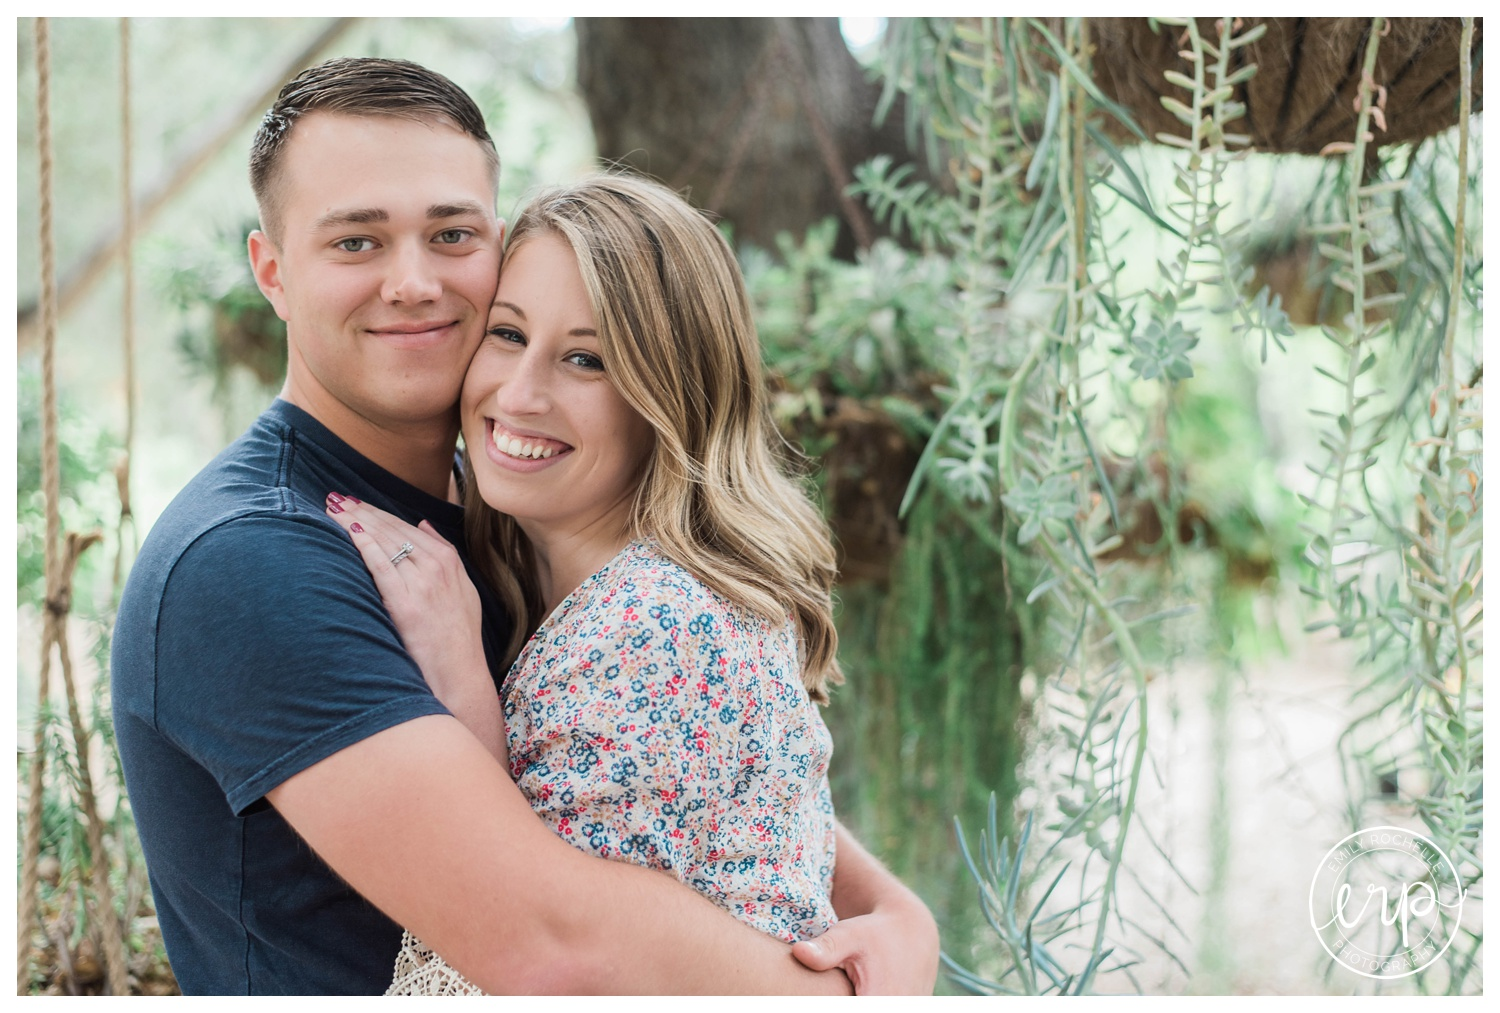 Couple during engagement session at Myrtle Creek smiling at the camera.